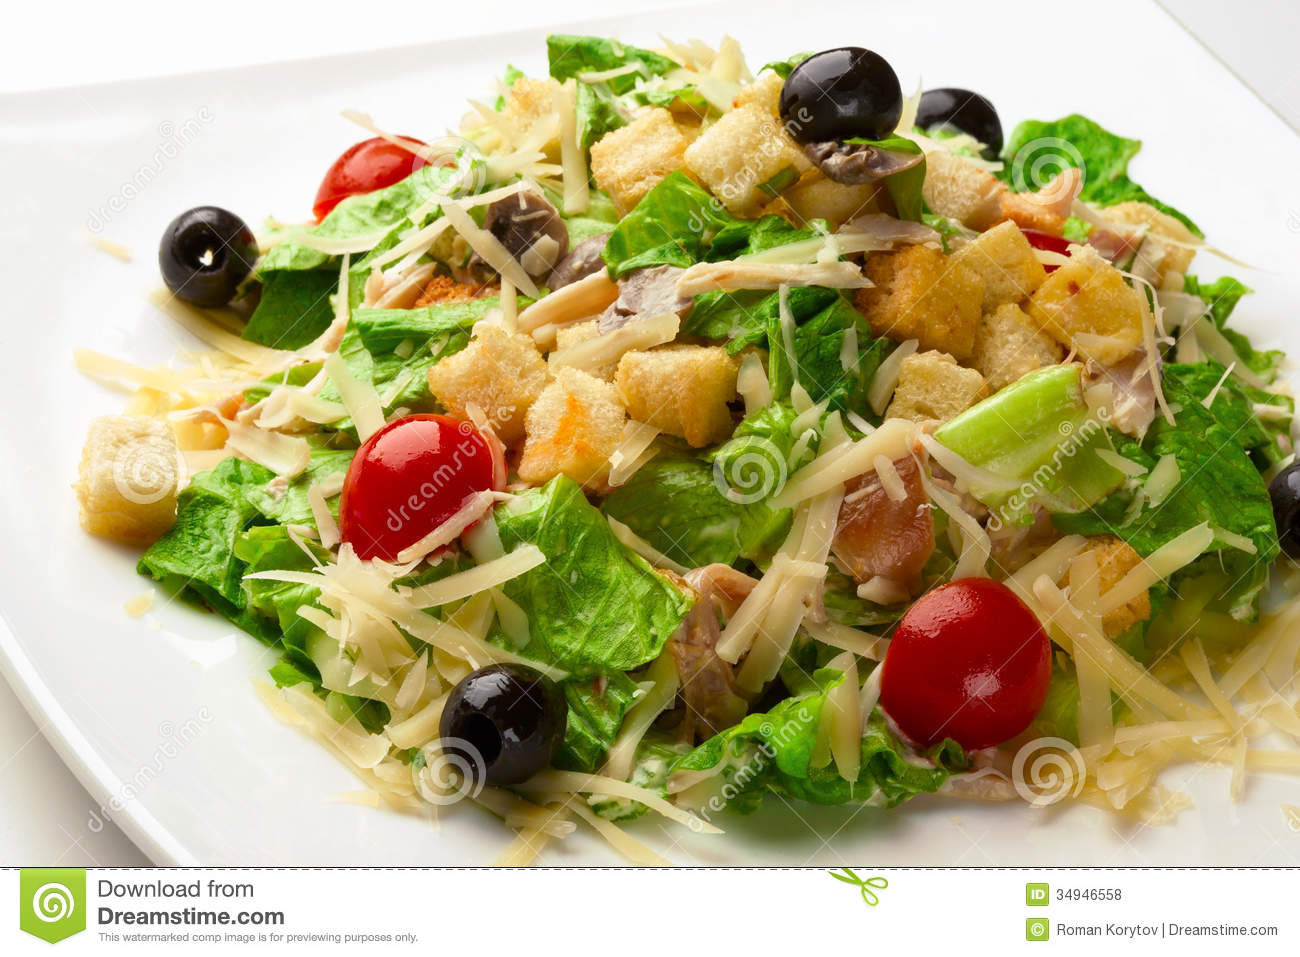 Caesar Salad Royalty Free Stock Photos - Image: 34946558